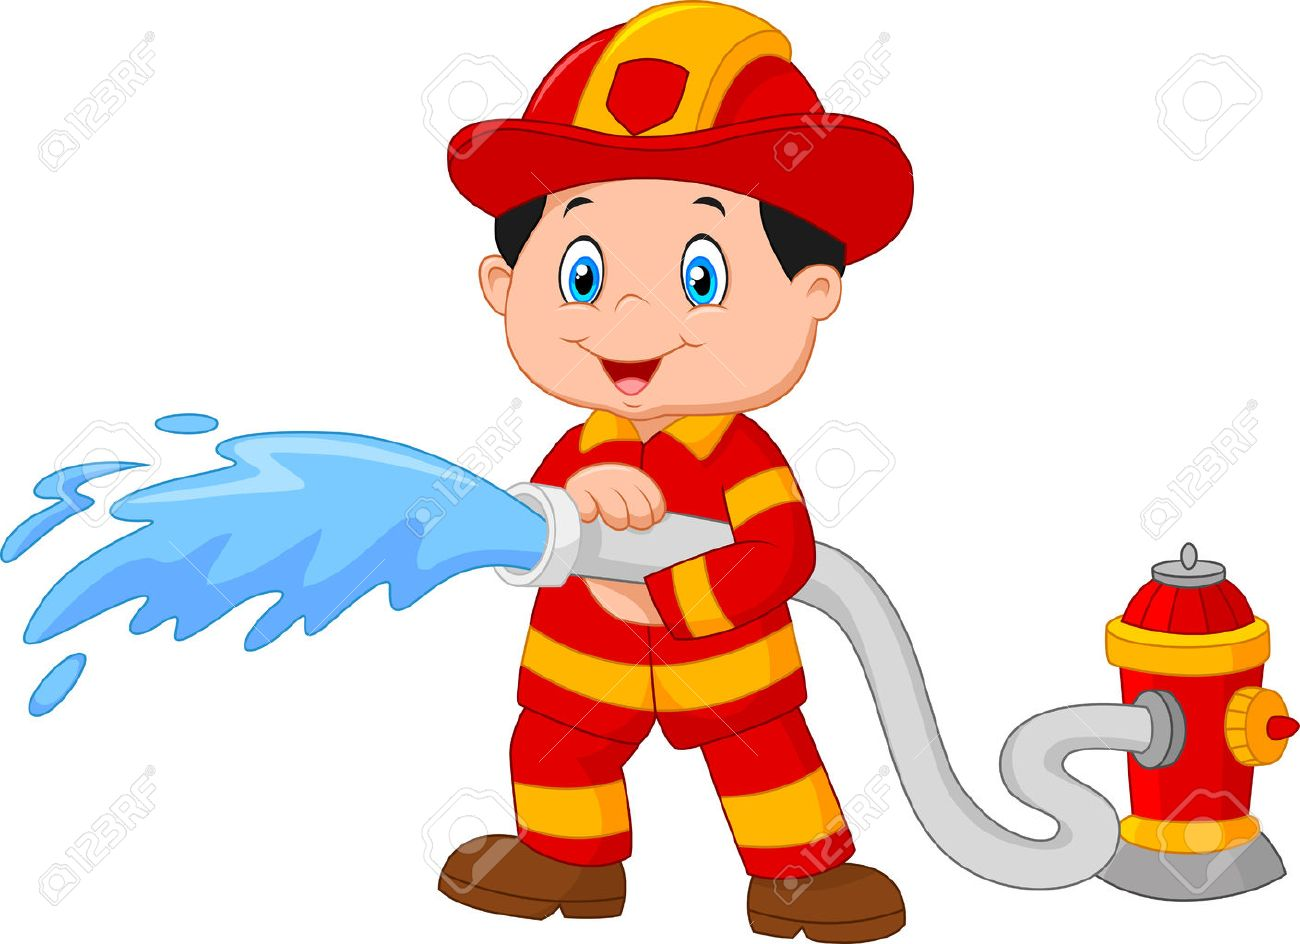 cartoon firefighter pours from a fire hose royalty free cliparts rh 123rf com funny firefighter cartoon pictures firefighter cartoon images free